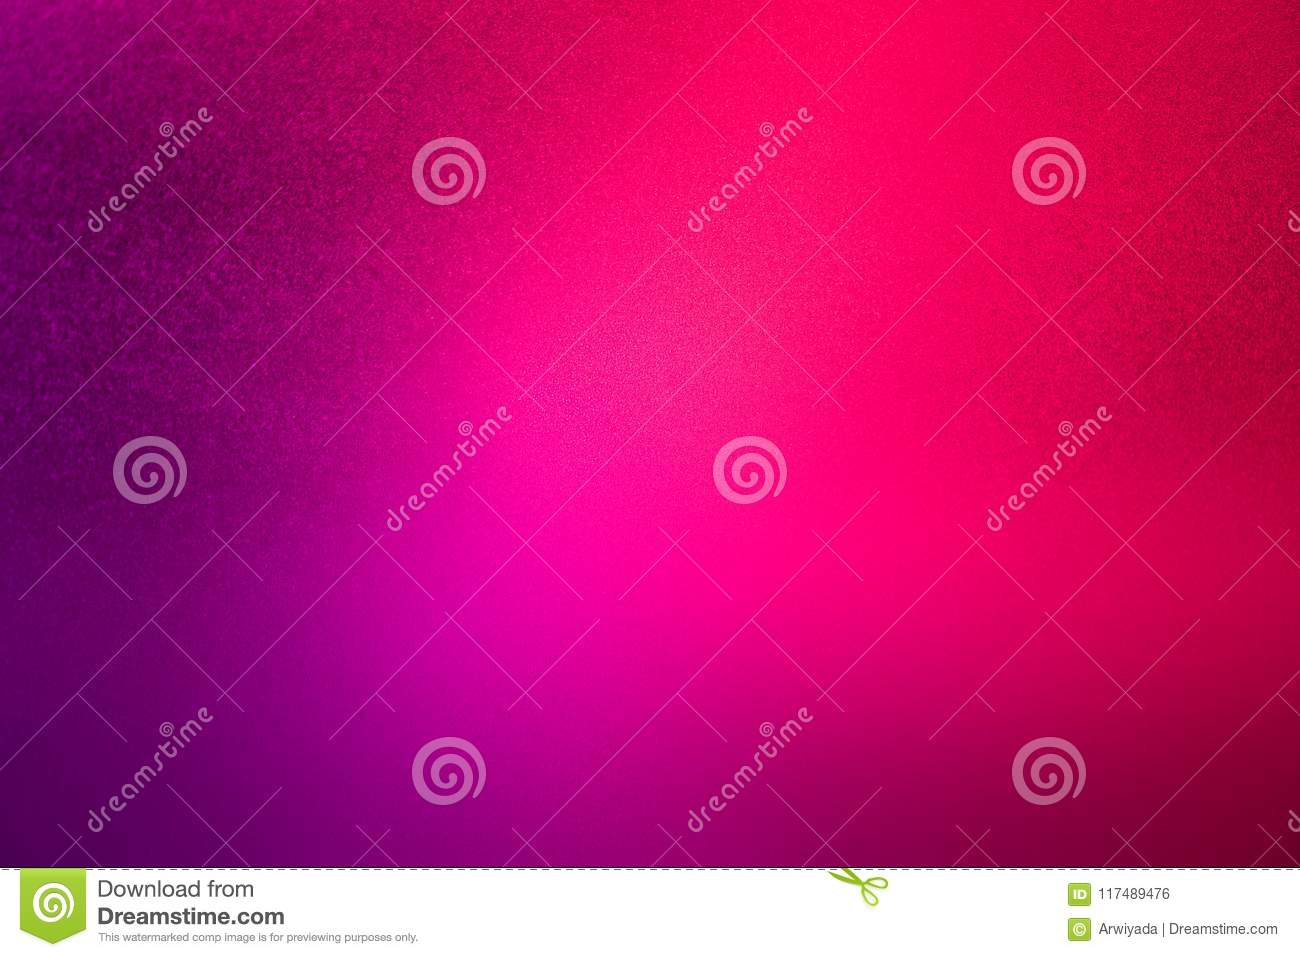 Pink purple background blurred light red gradient abstract texture studio backdrop soft pastel